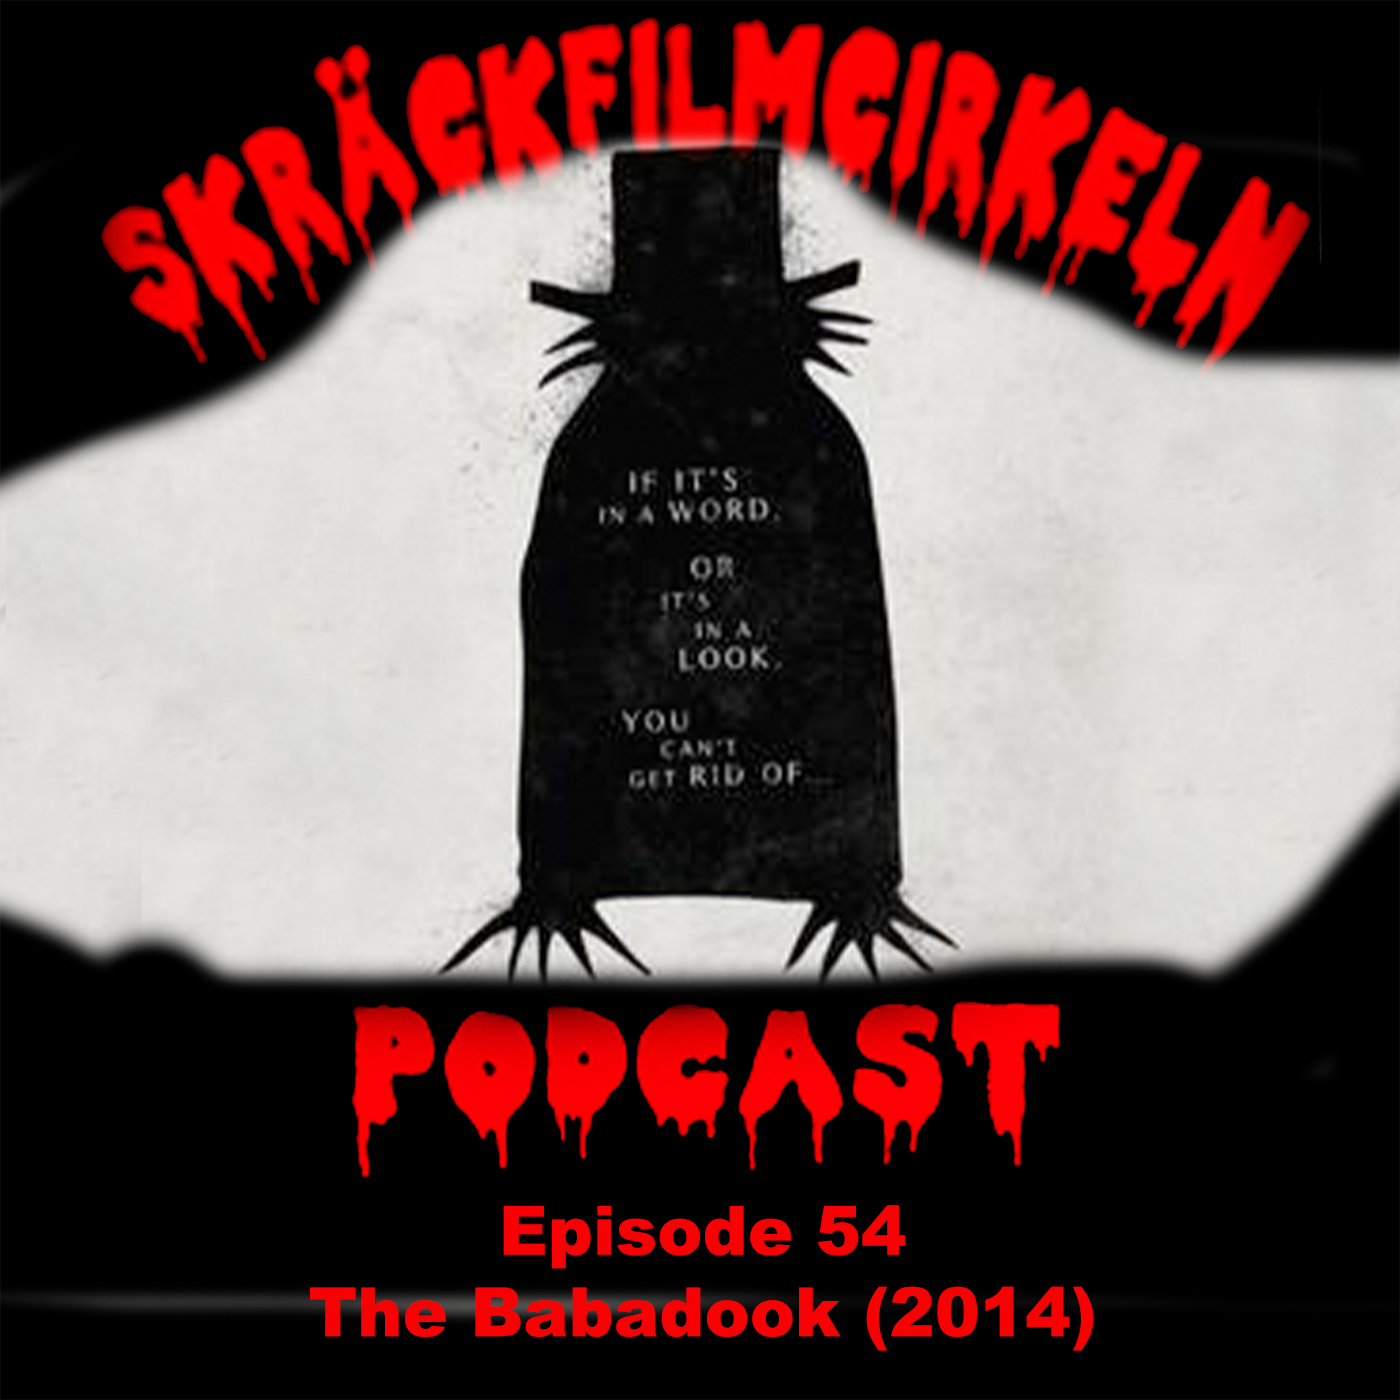 Episode 54 - Hysteri - The Babadook (2014)